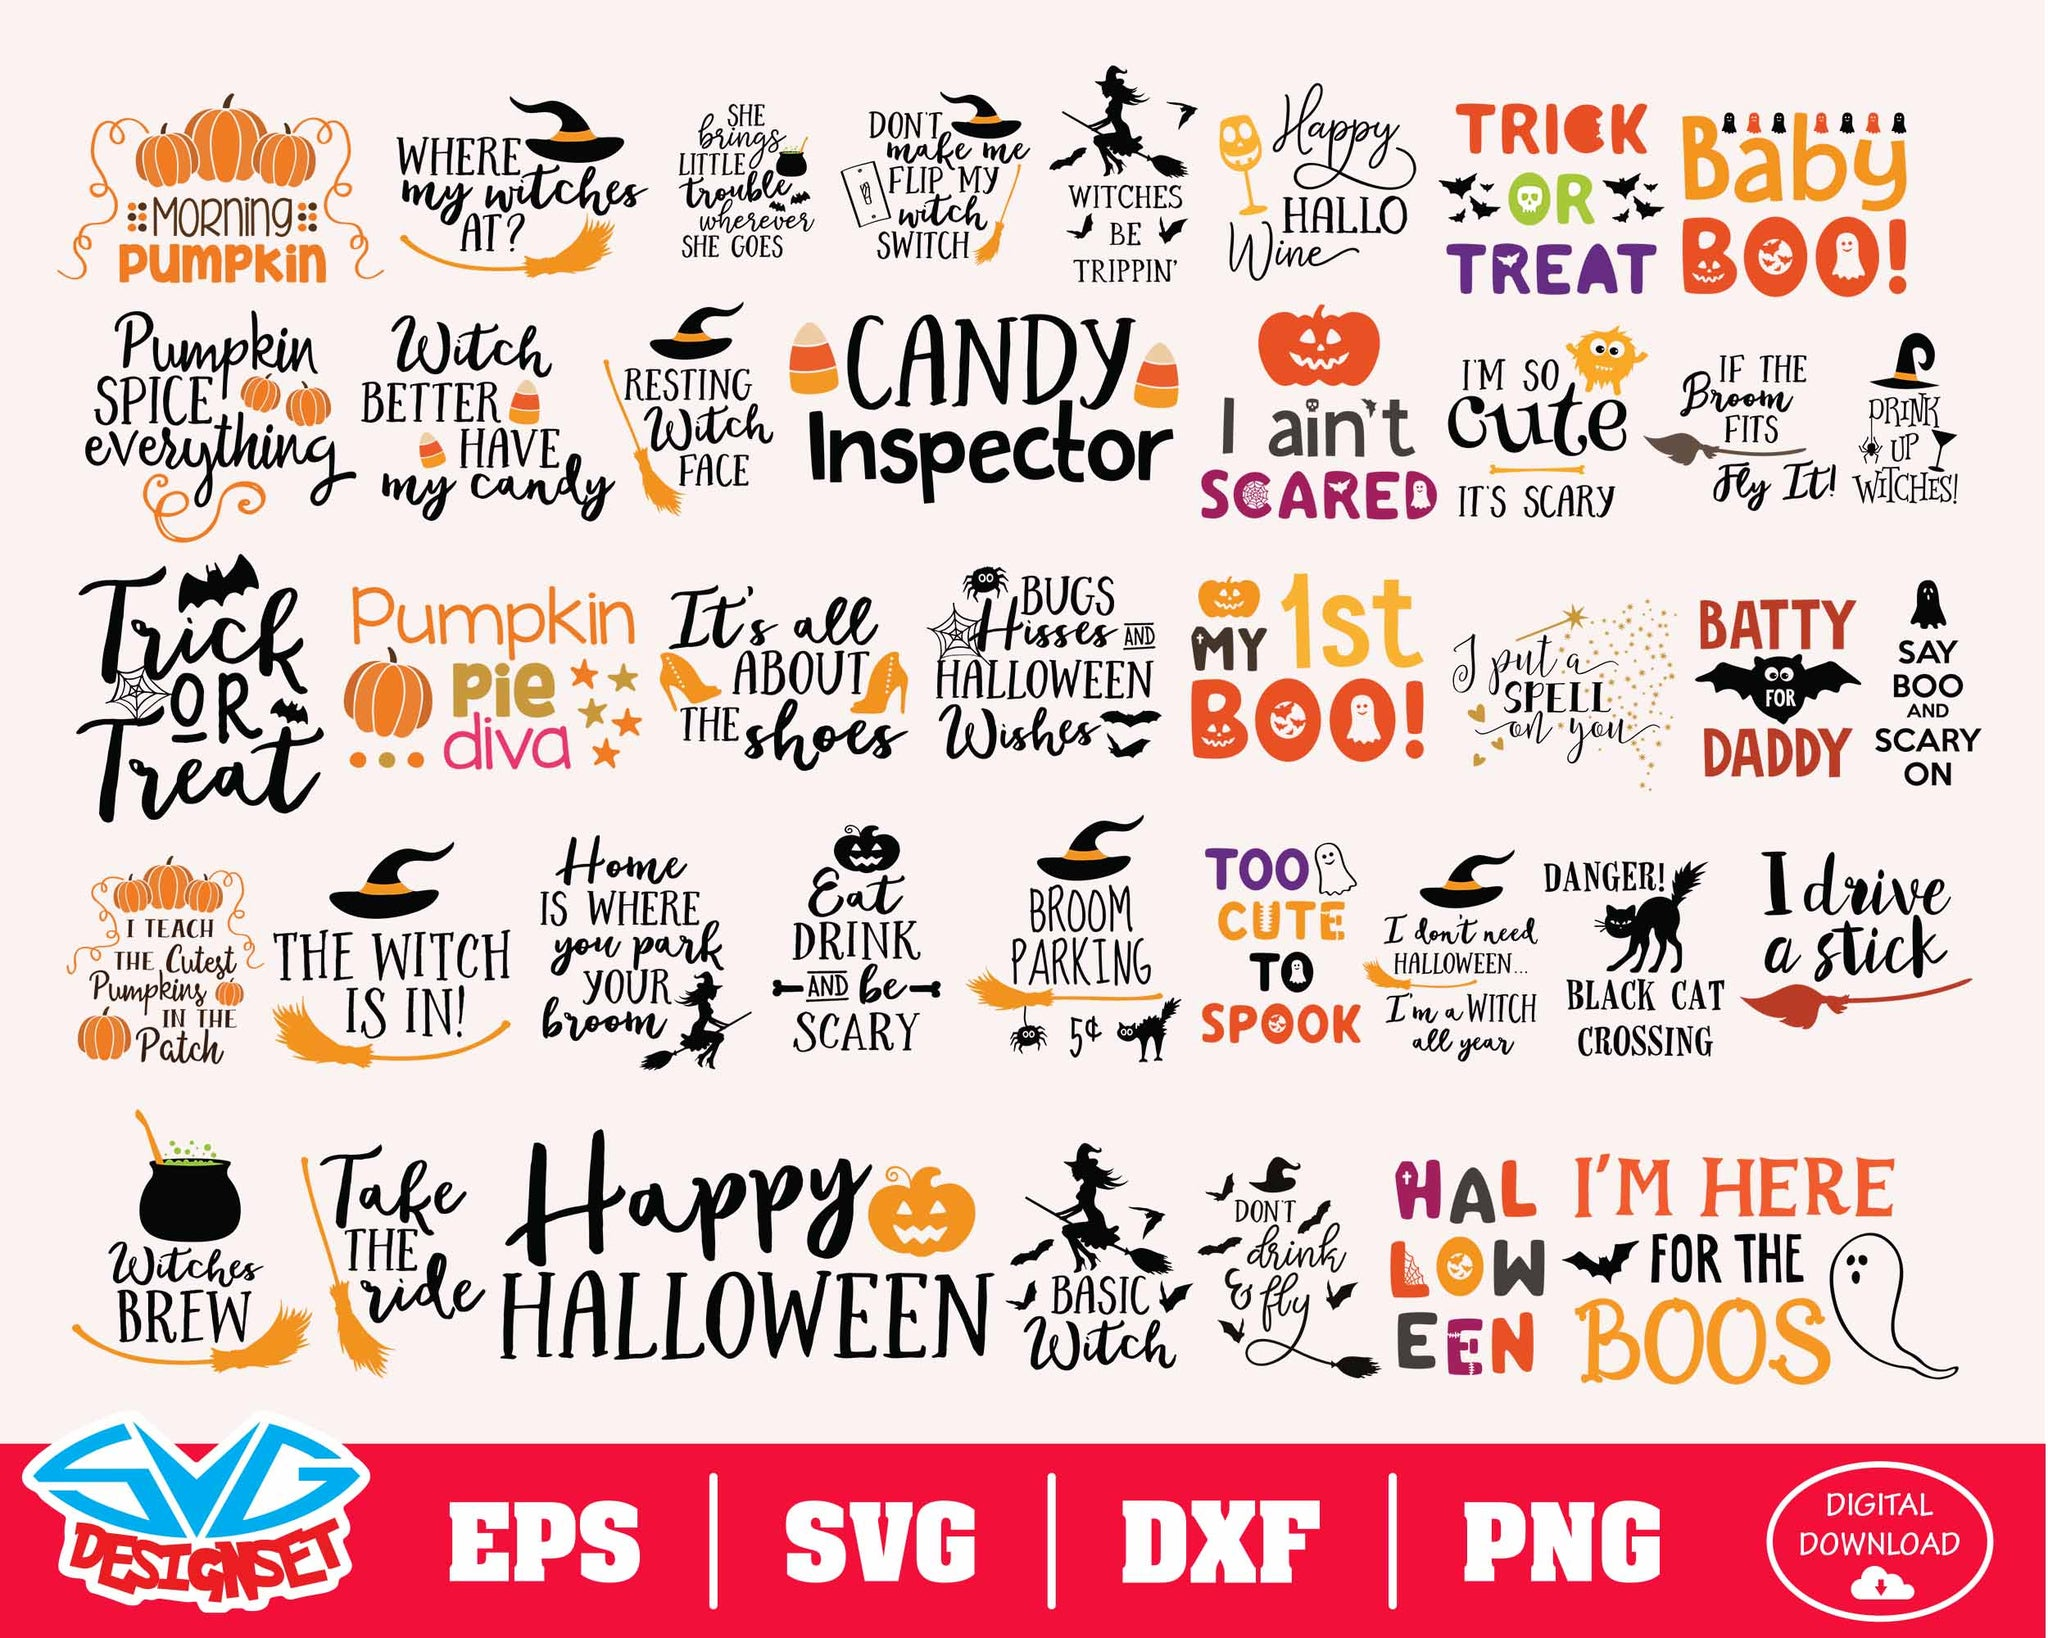 Halloween Bundle Svg, Dxf, Eps, Png, Clipart, Silhouette and Cutfiles #7